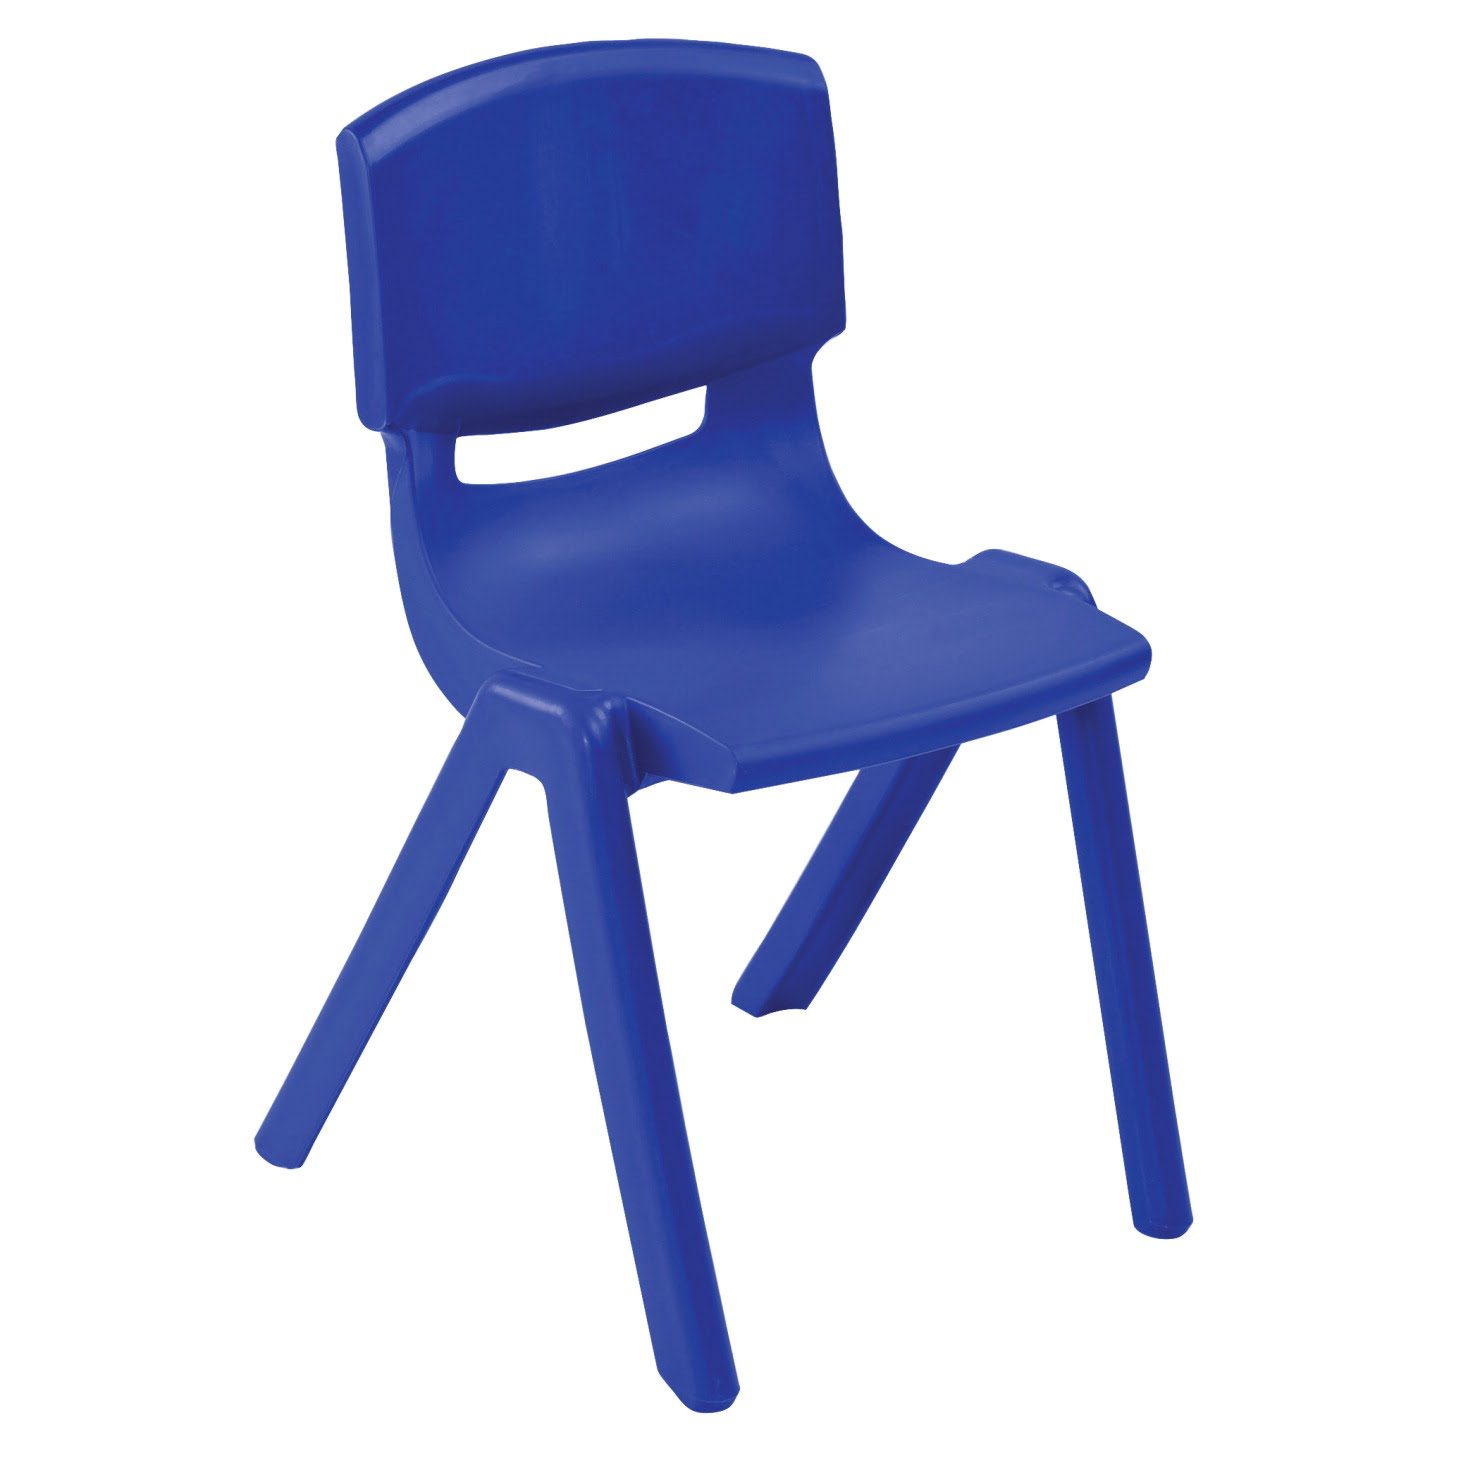 Awe Inspiring Ecr4Kids Resin Chair With 10 In Seat Pack Of 6 Alphanode Cool Chair Designs And Ideas Alphanodeonline